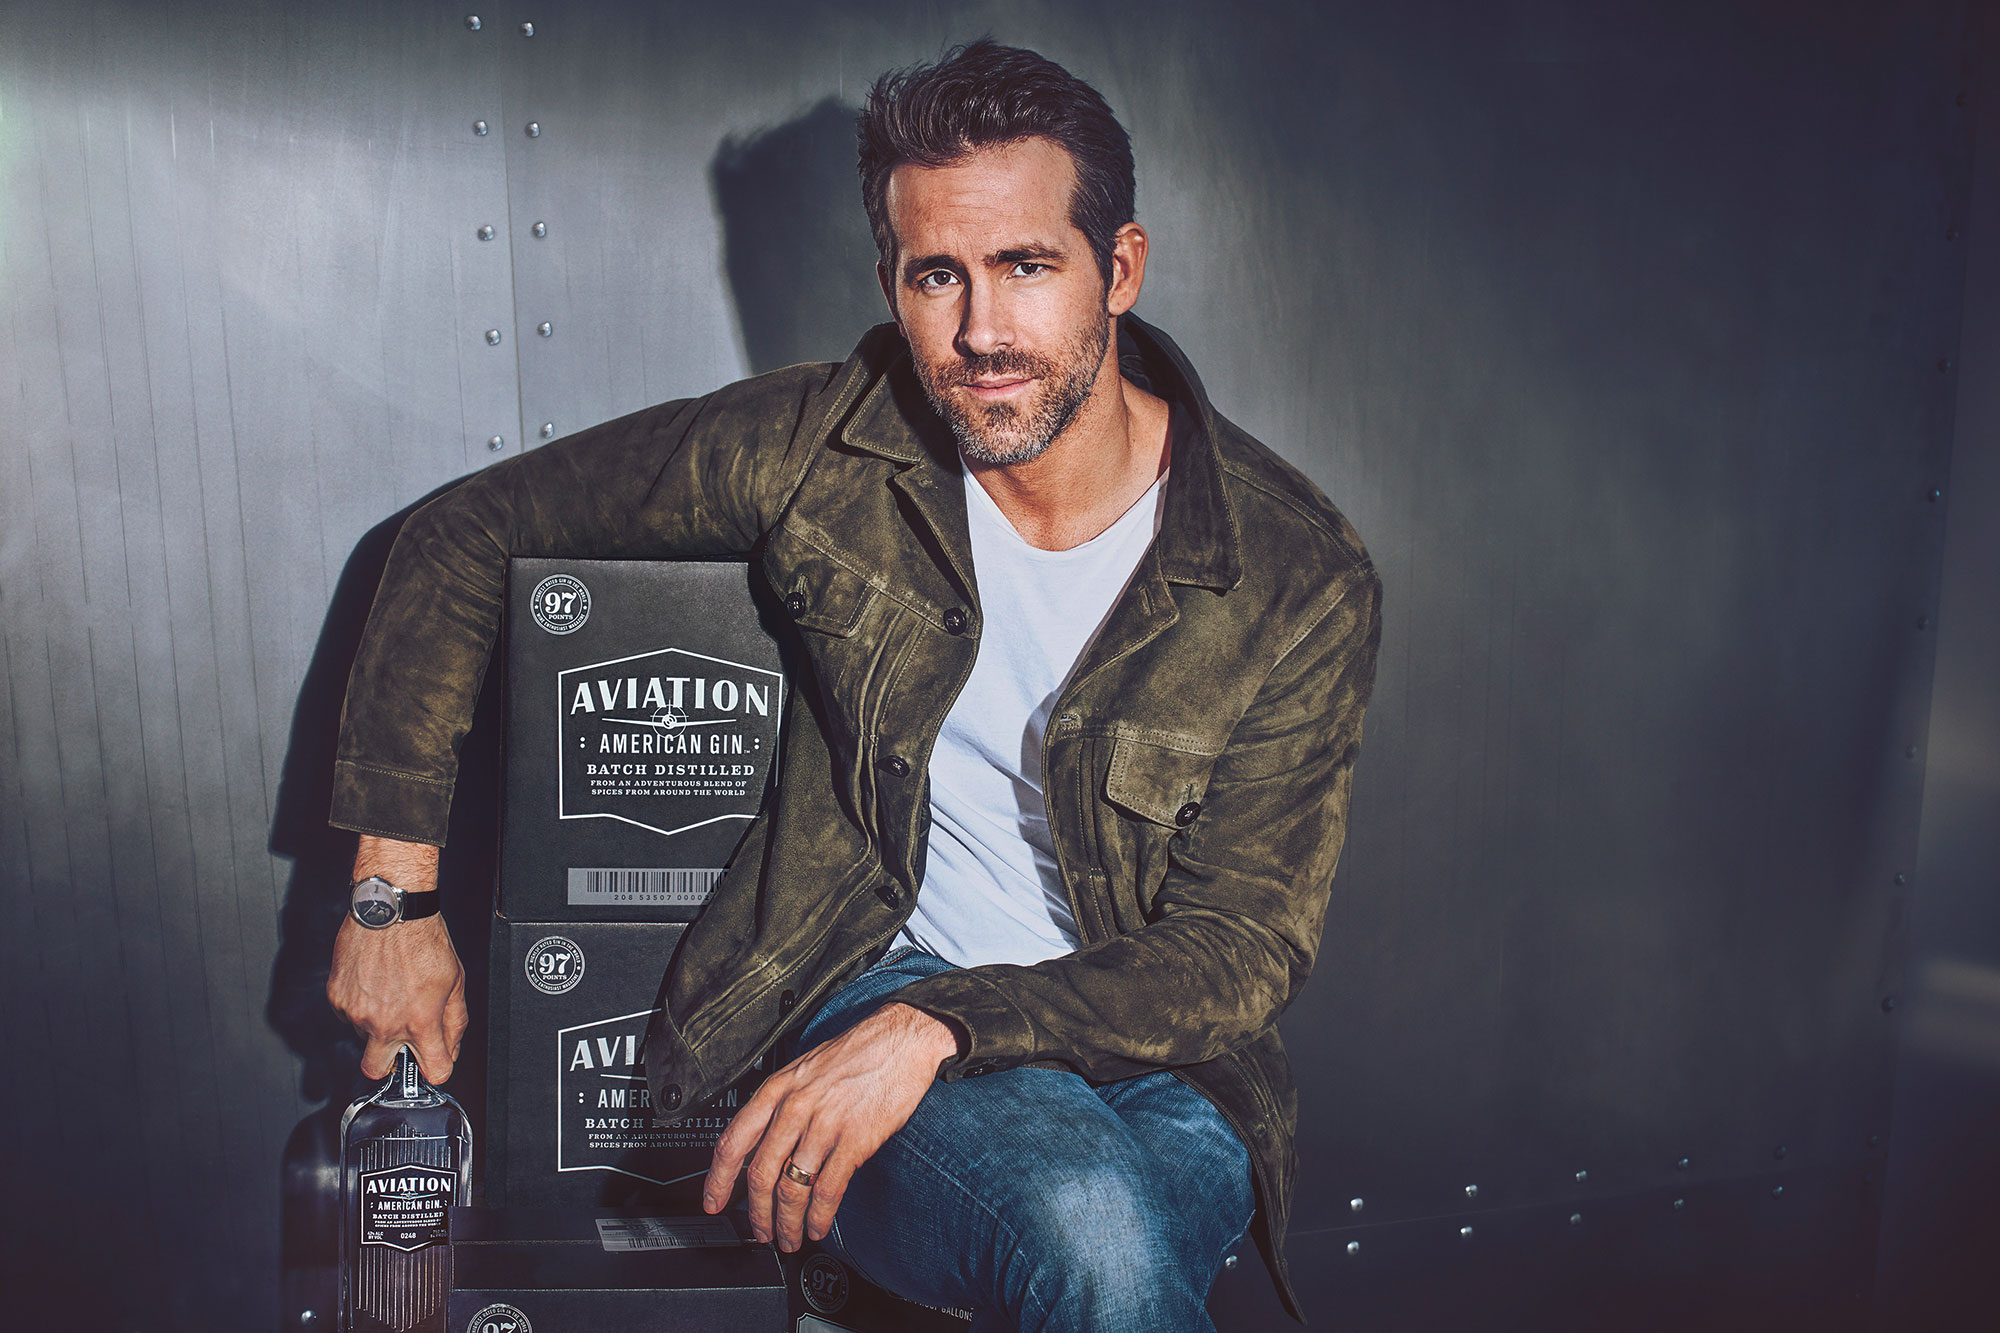 Ryan Reynolds' Aviation gin sells for $610 million